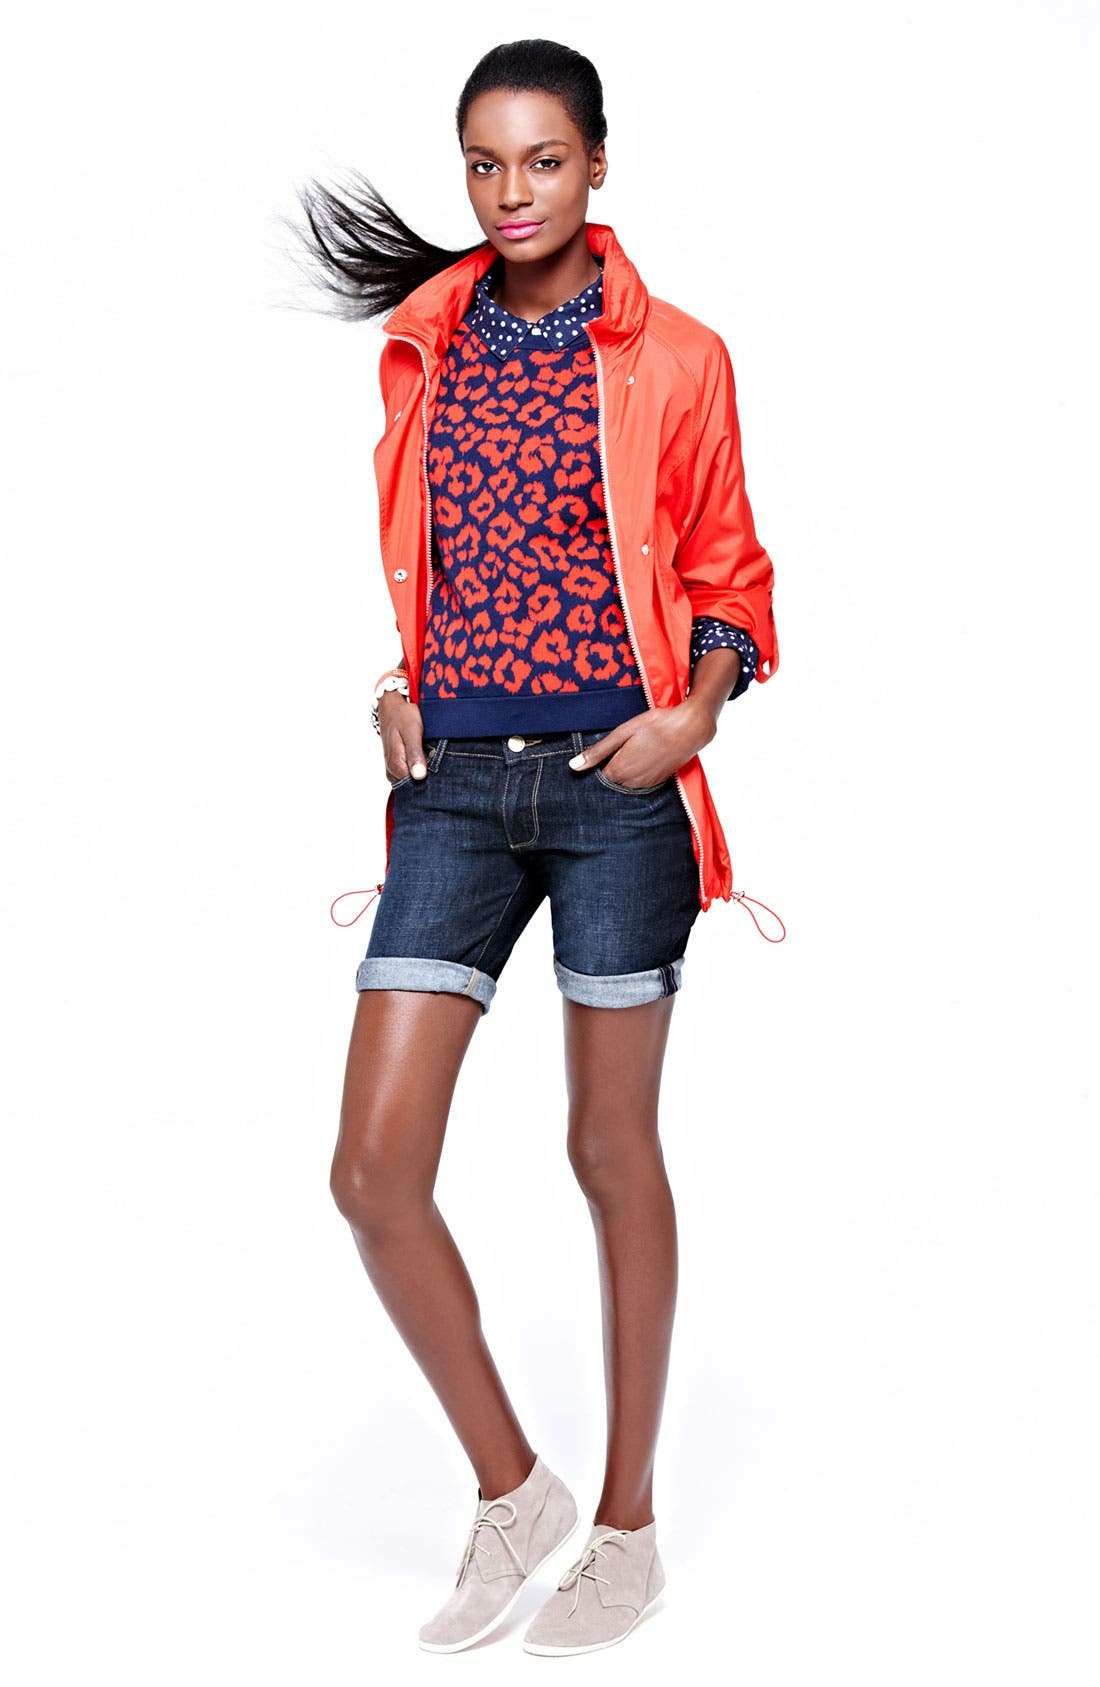 Main Image - Vince Camuto Jacket, Marc by Marc Jacobs Sweater & Paige Denim Shorts